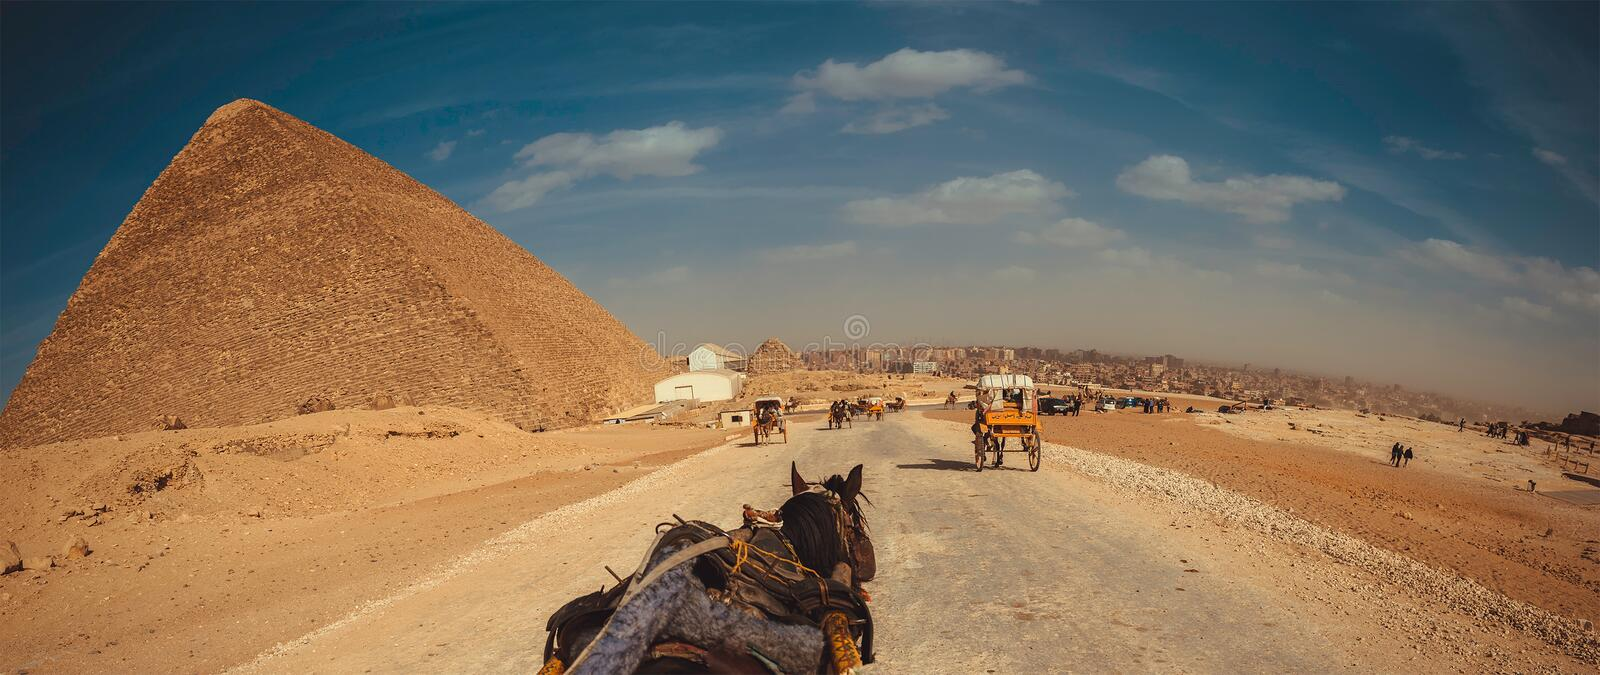 Egypt. A trip in Egypt and the pyramids royalty free stock photos